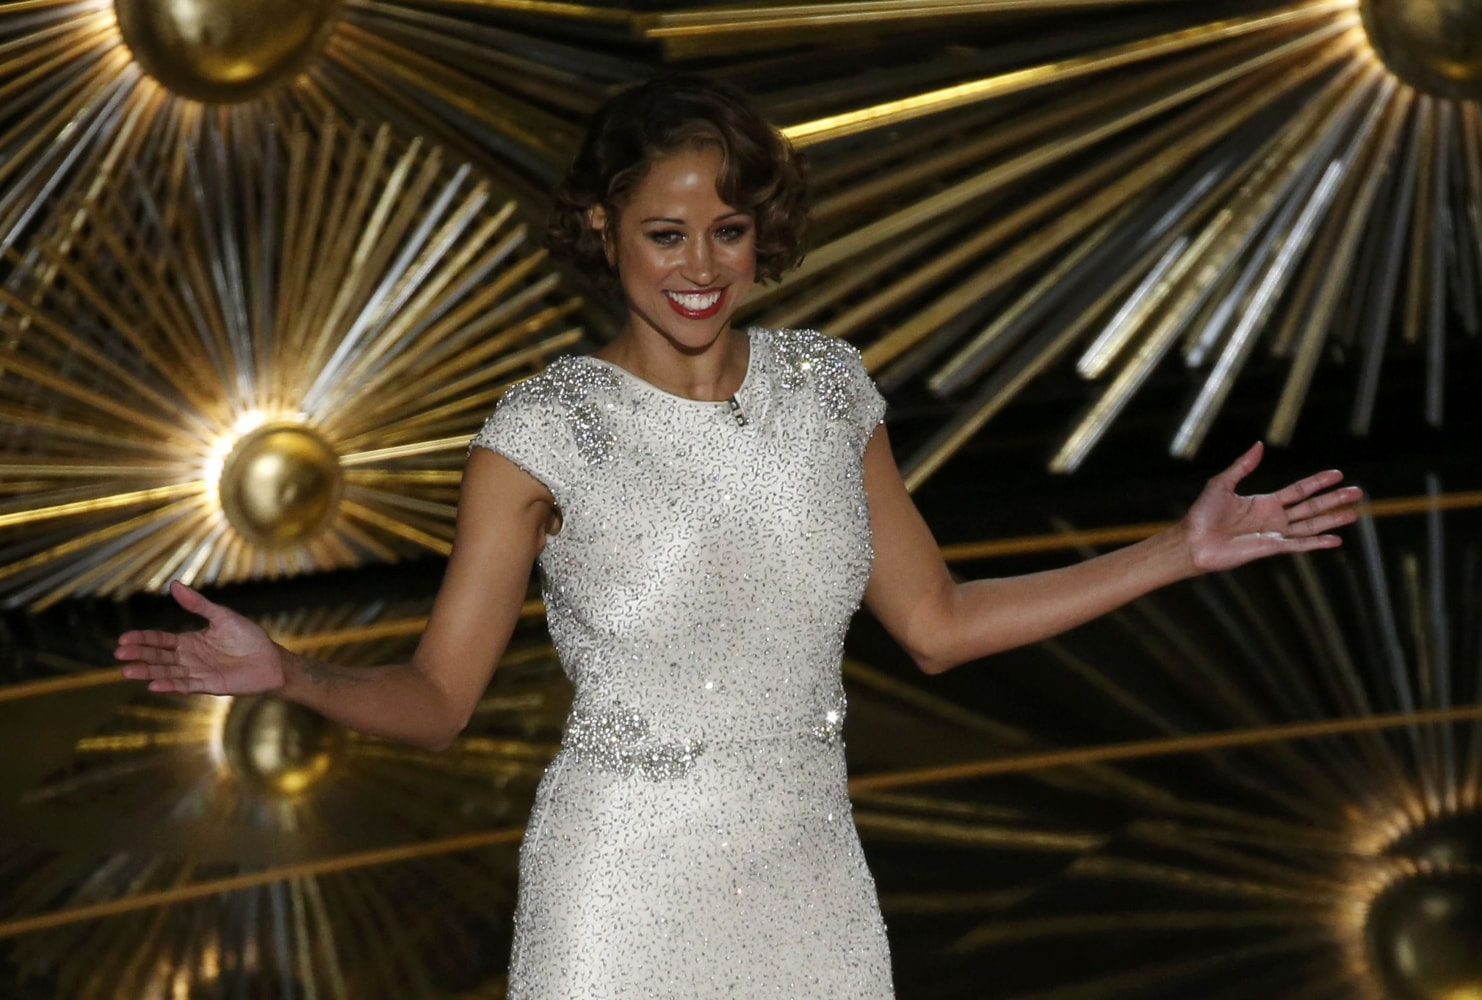 Actress stacey dash during her appearance sunday at the academy awards